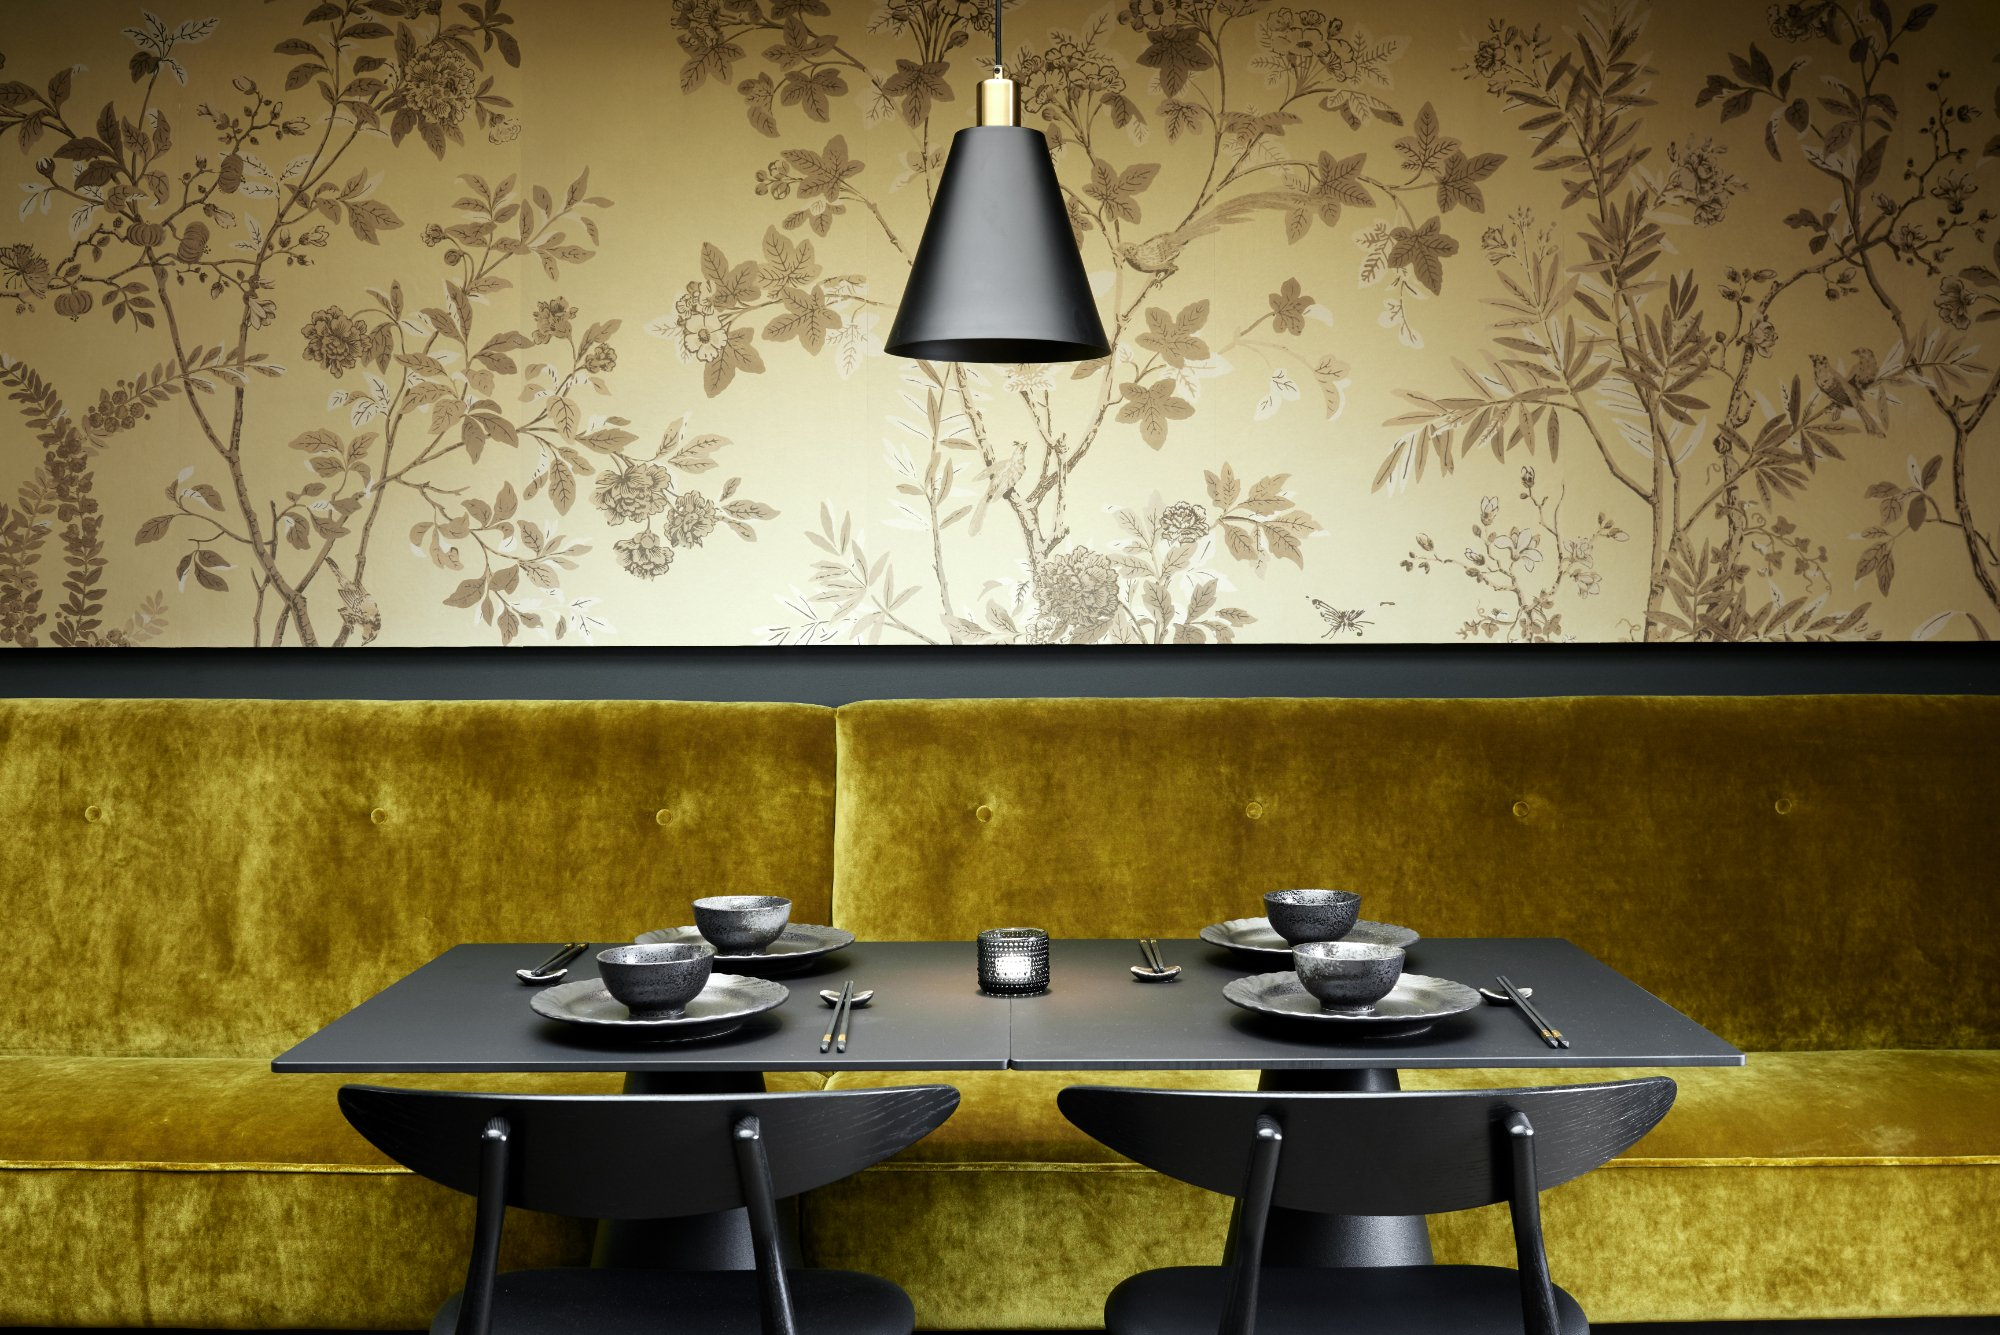 the 10 best restaurants near sydney house chelsea london